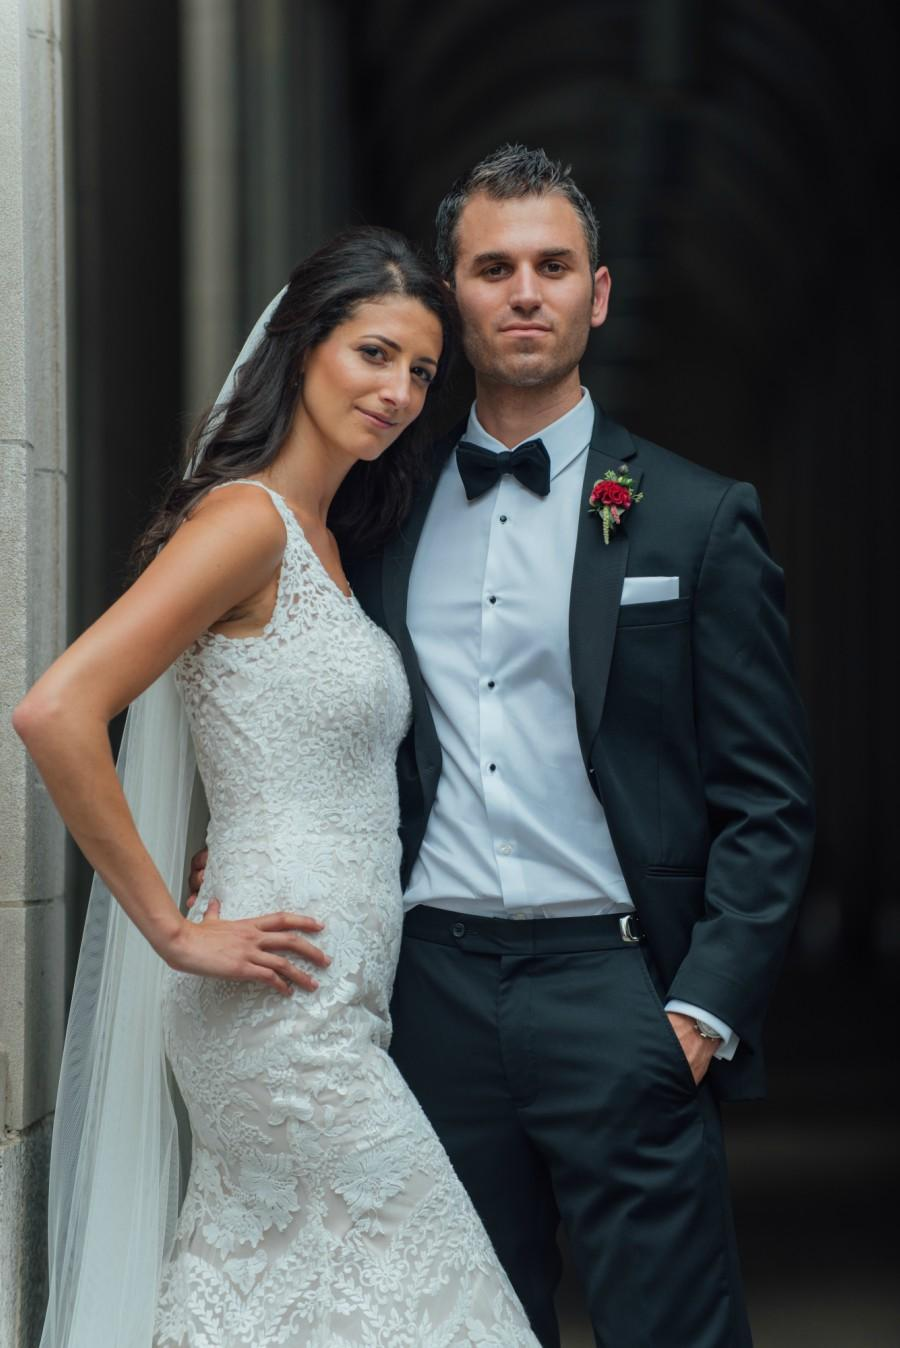 Enchanting Great Gatsby Wedding at the Union Trust | Philly In Love